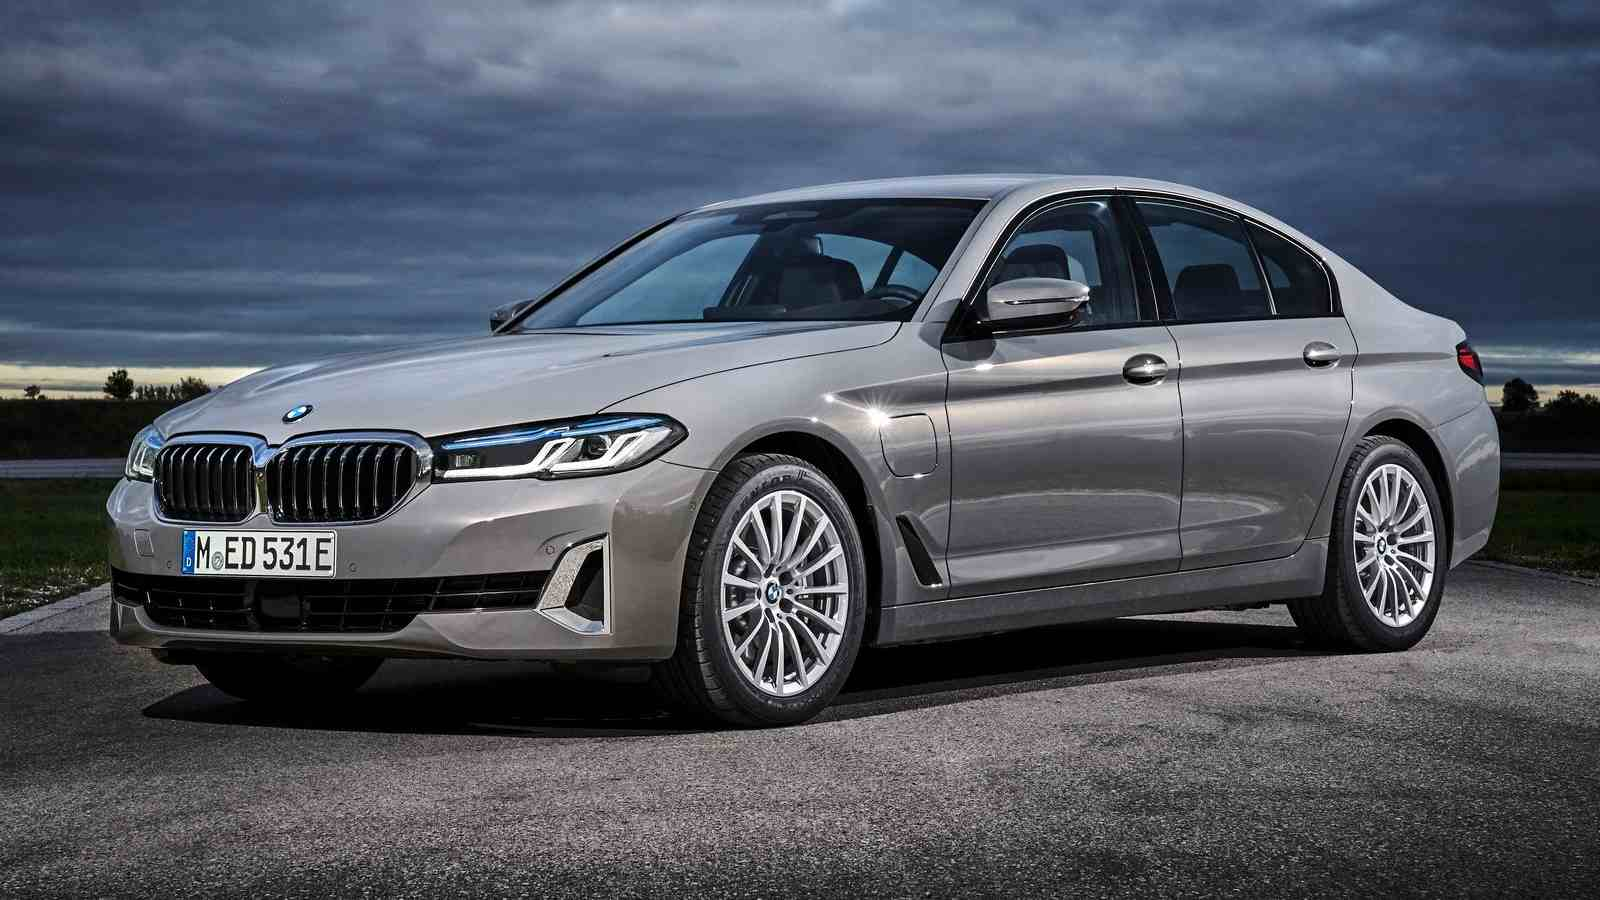 The 2021 BMW 5 Series facelift follows the launch of the updated 6 Series GT. Image: BMW